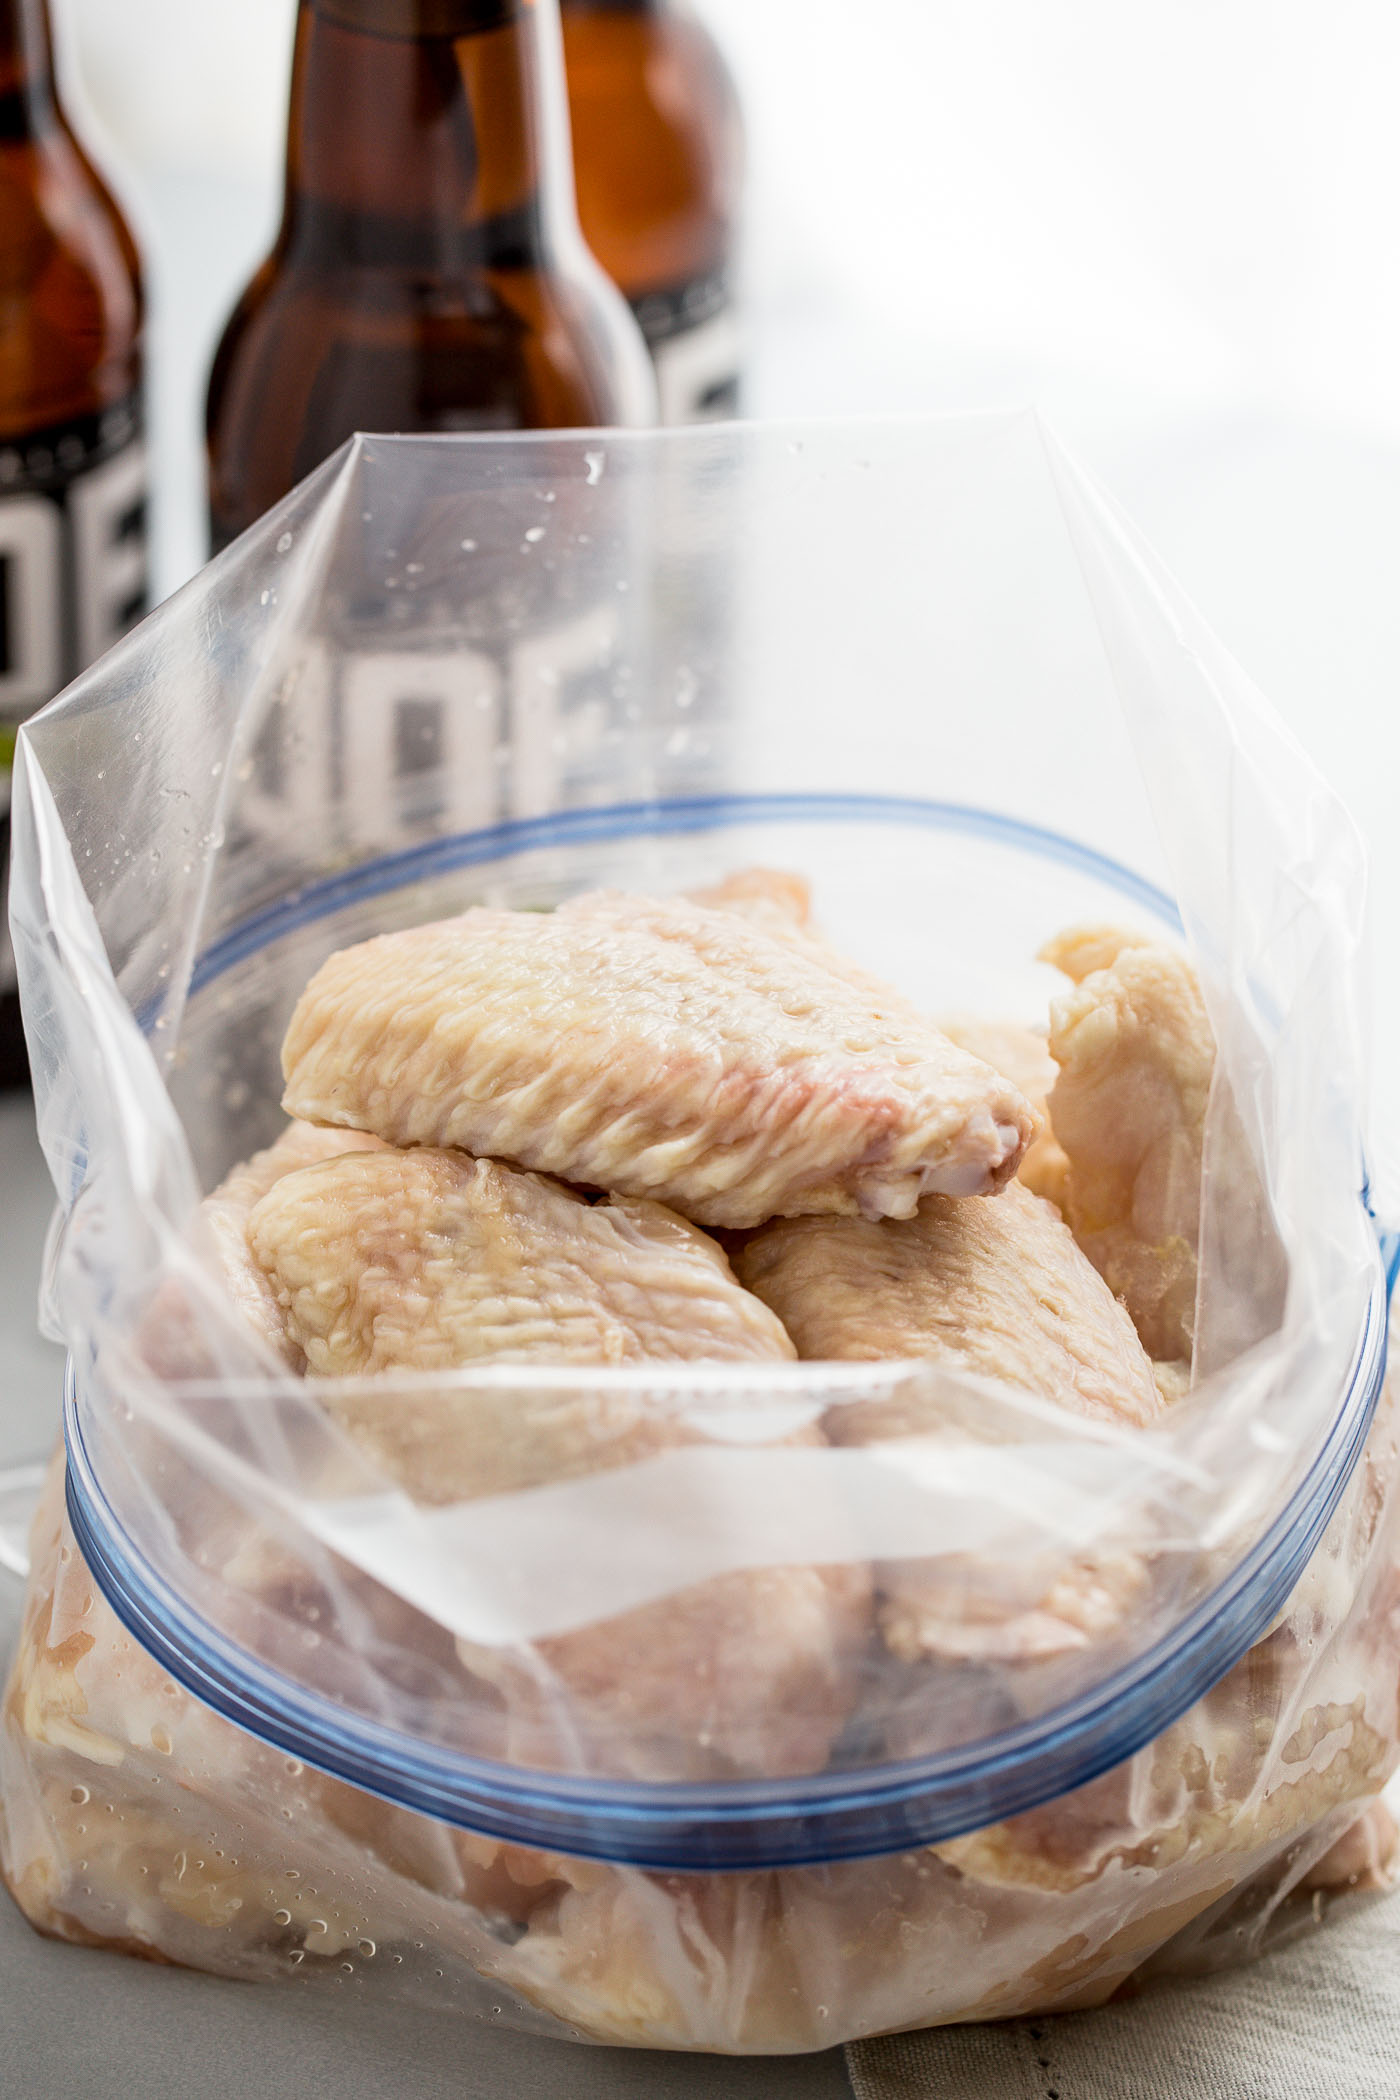 a method & recipe for how to make the perfect grilled buffalo chicken wings. these grilled wings are perfectly crispy & have the best charred buffalo flavor, but they stay juicy from a beer brine. served with a creamy cool feta ranch, grilled wings are perfect for an easy summer dinner when you're having friends over for a summer party, or for game day fun!